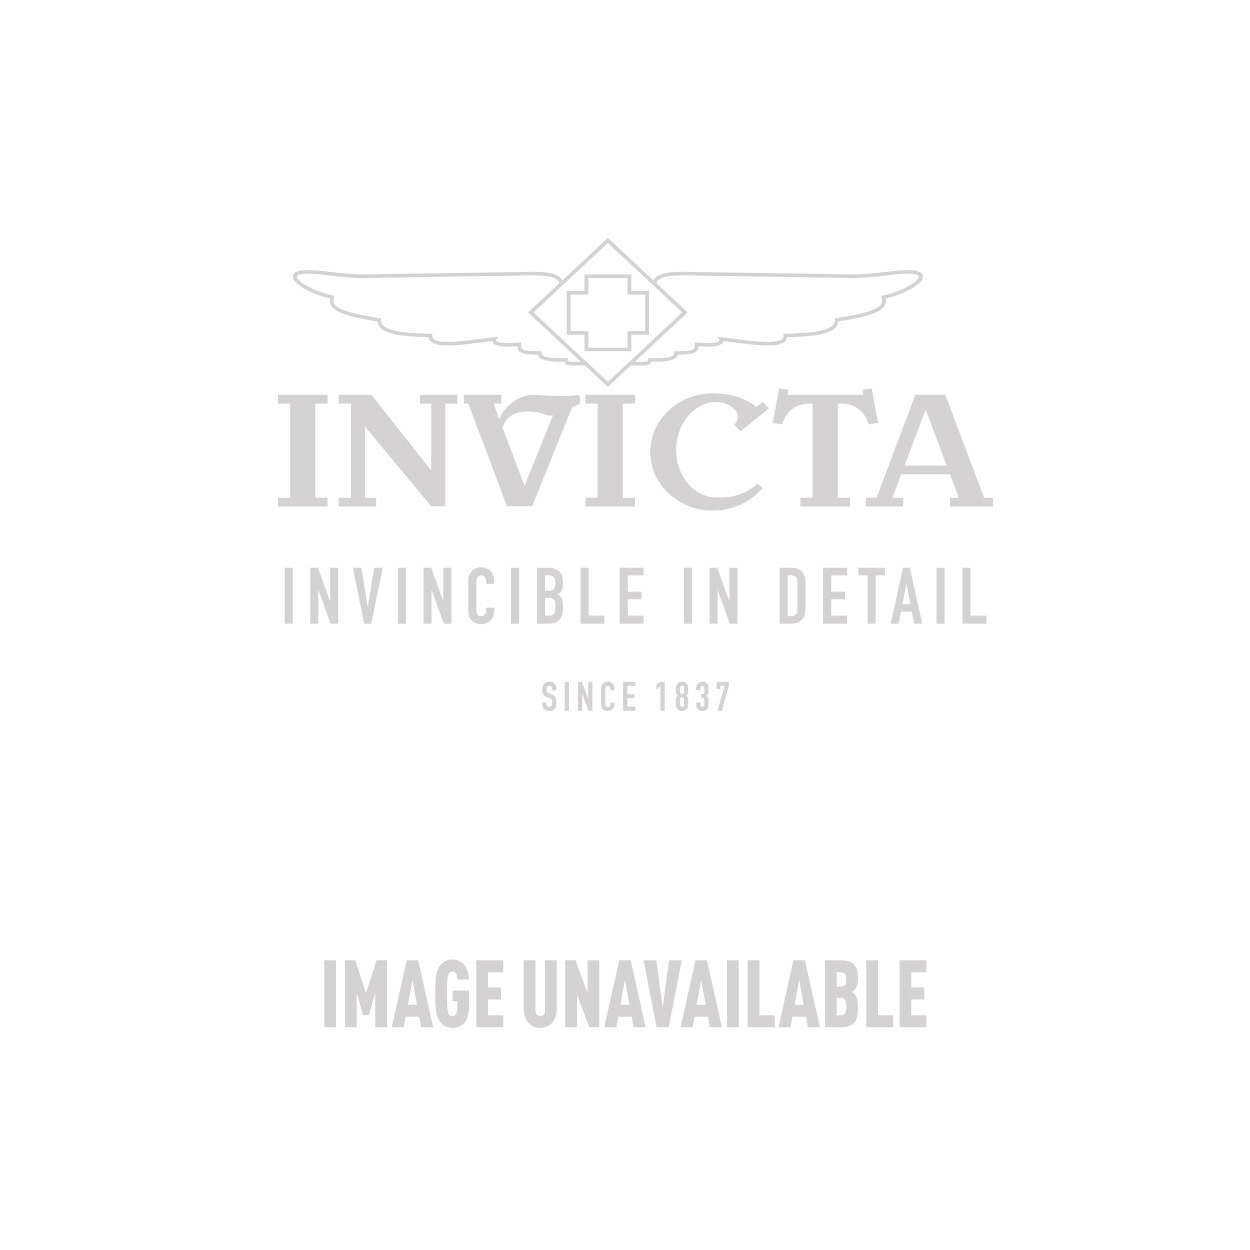 Invicta Akula Swiss Movement Quartz Watch - Black, Stainless Steel case with Black tone Silicone band - Model 12292